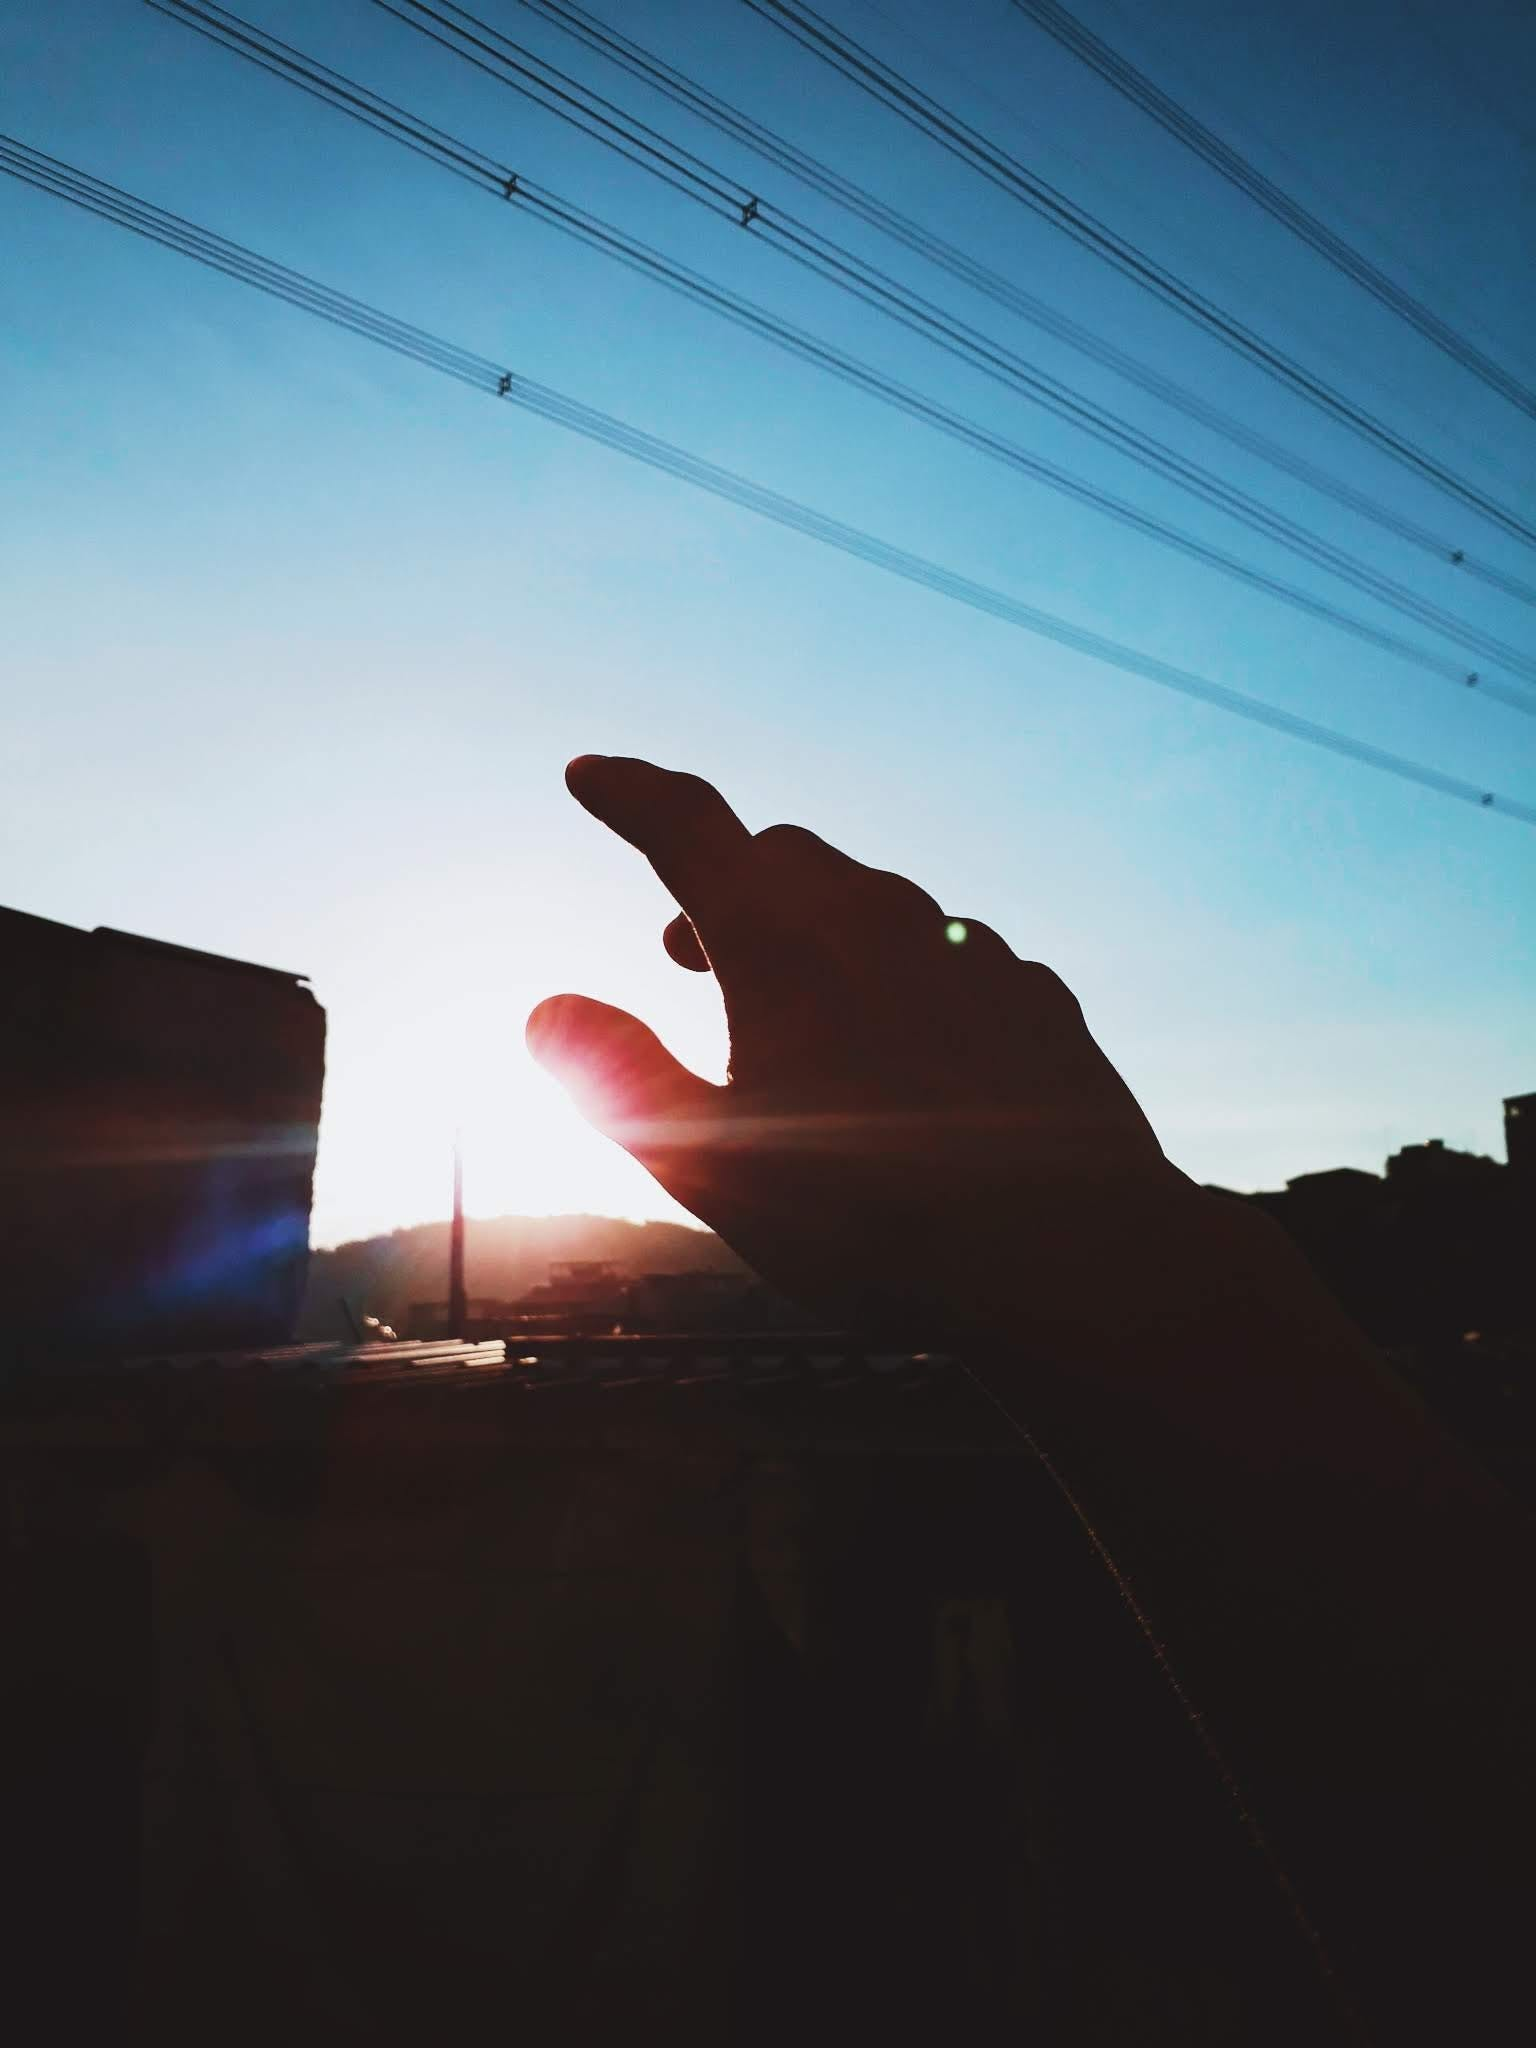 Silhouette of Right Hand